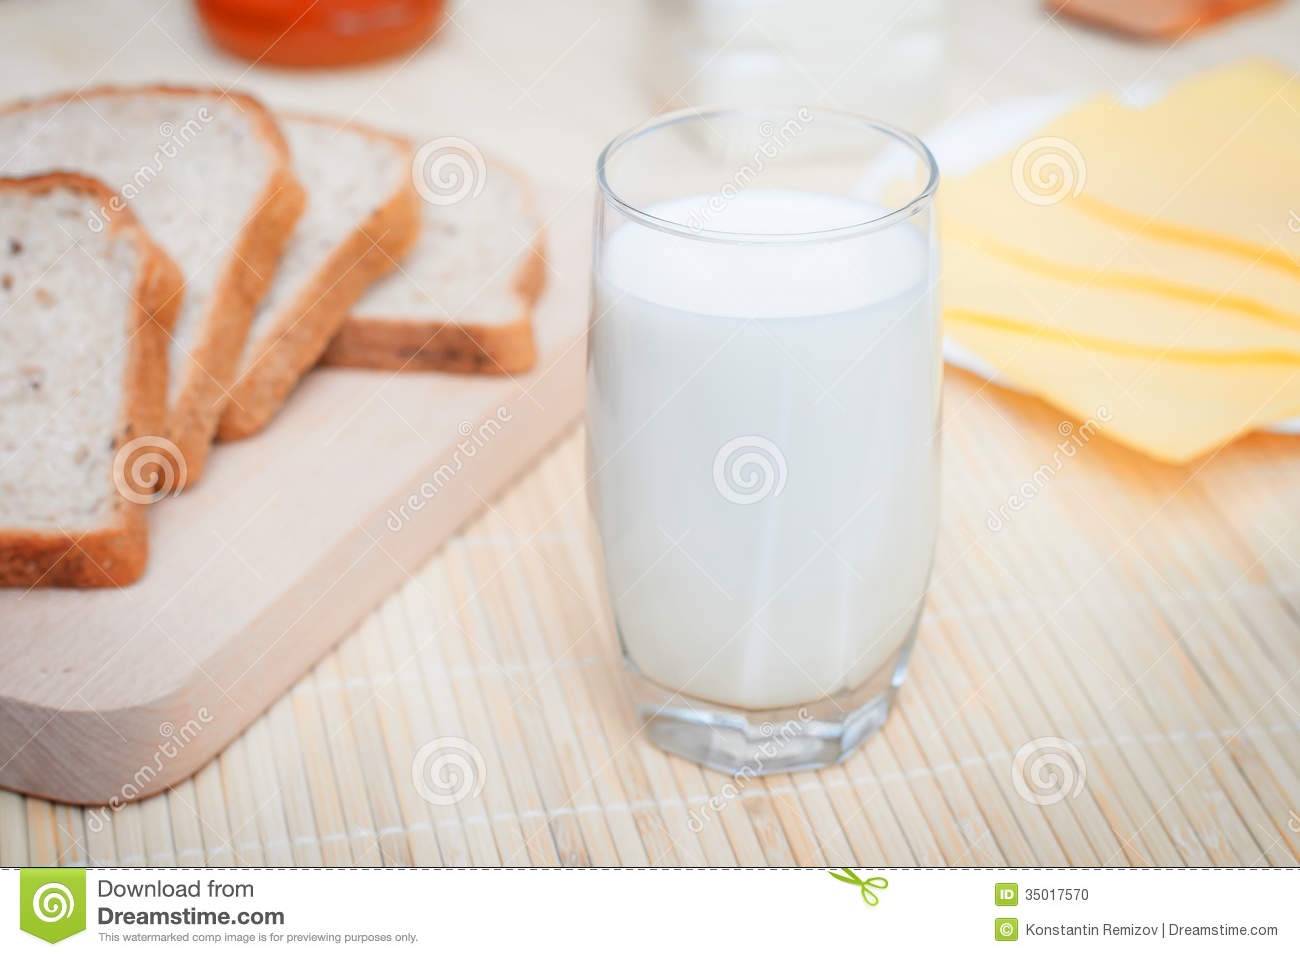 Milk stock photo Image of food, tasty, appetizing